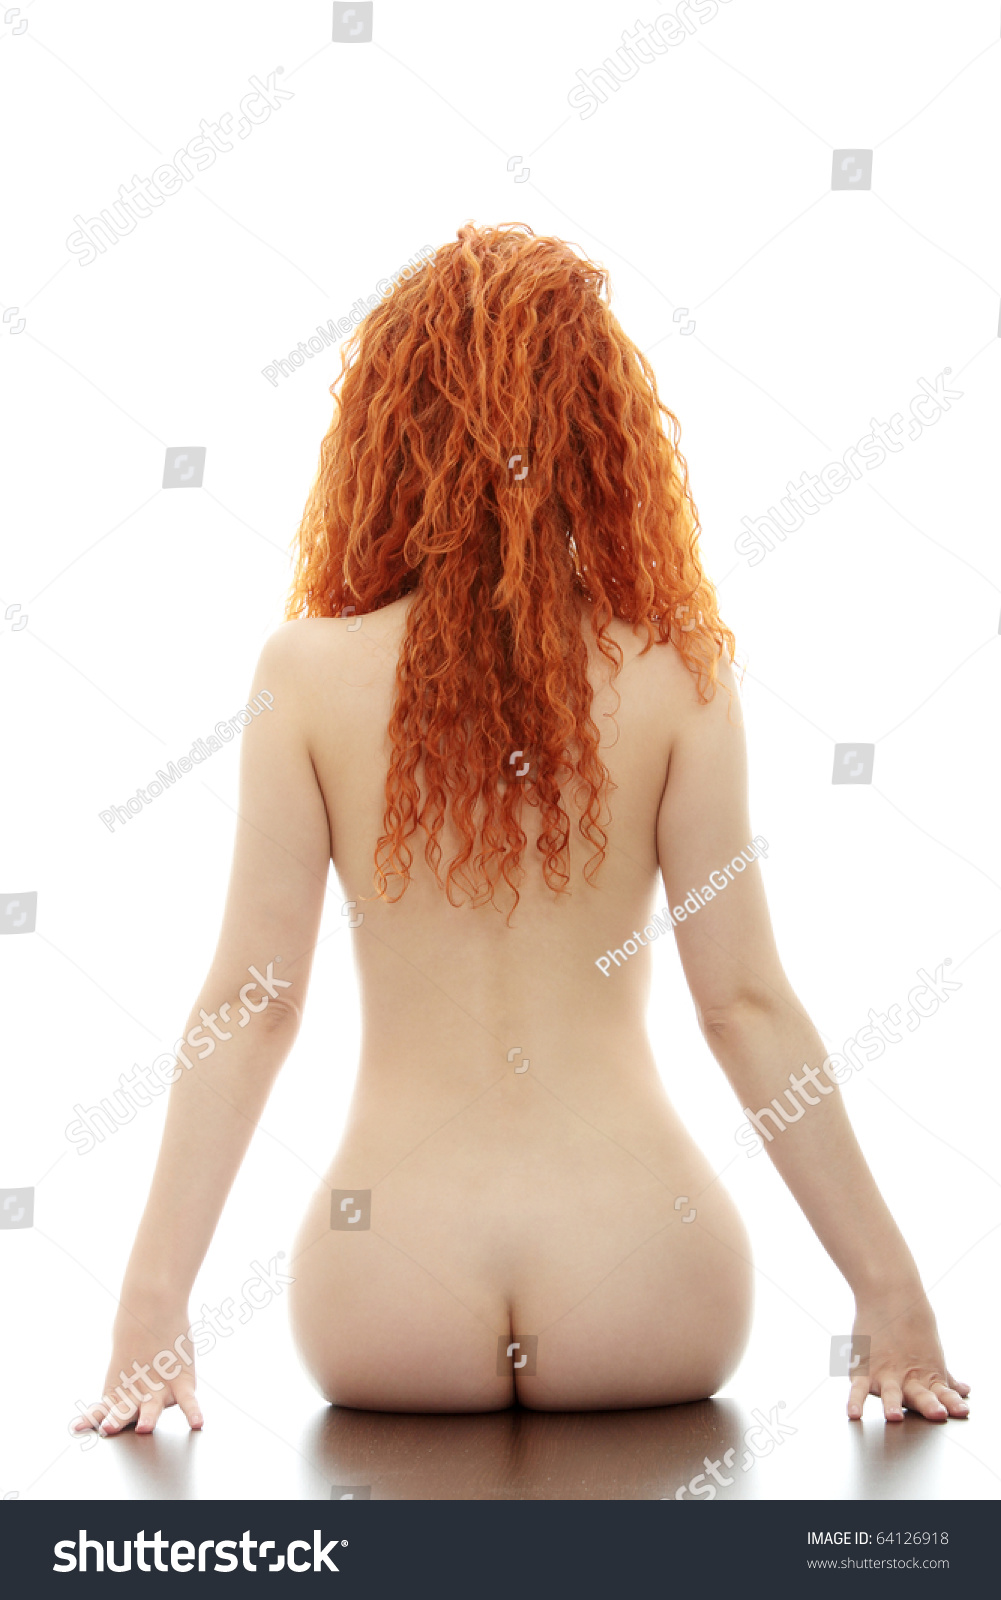 stock photo nude girl from back